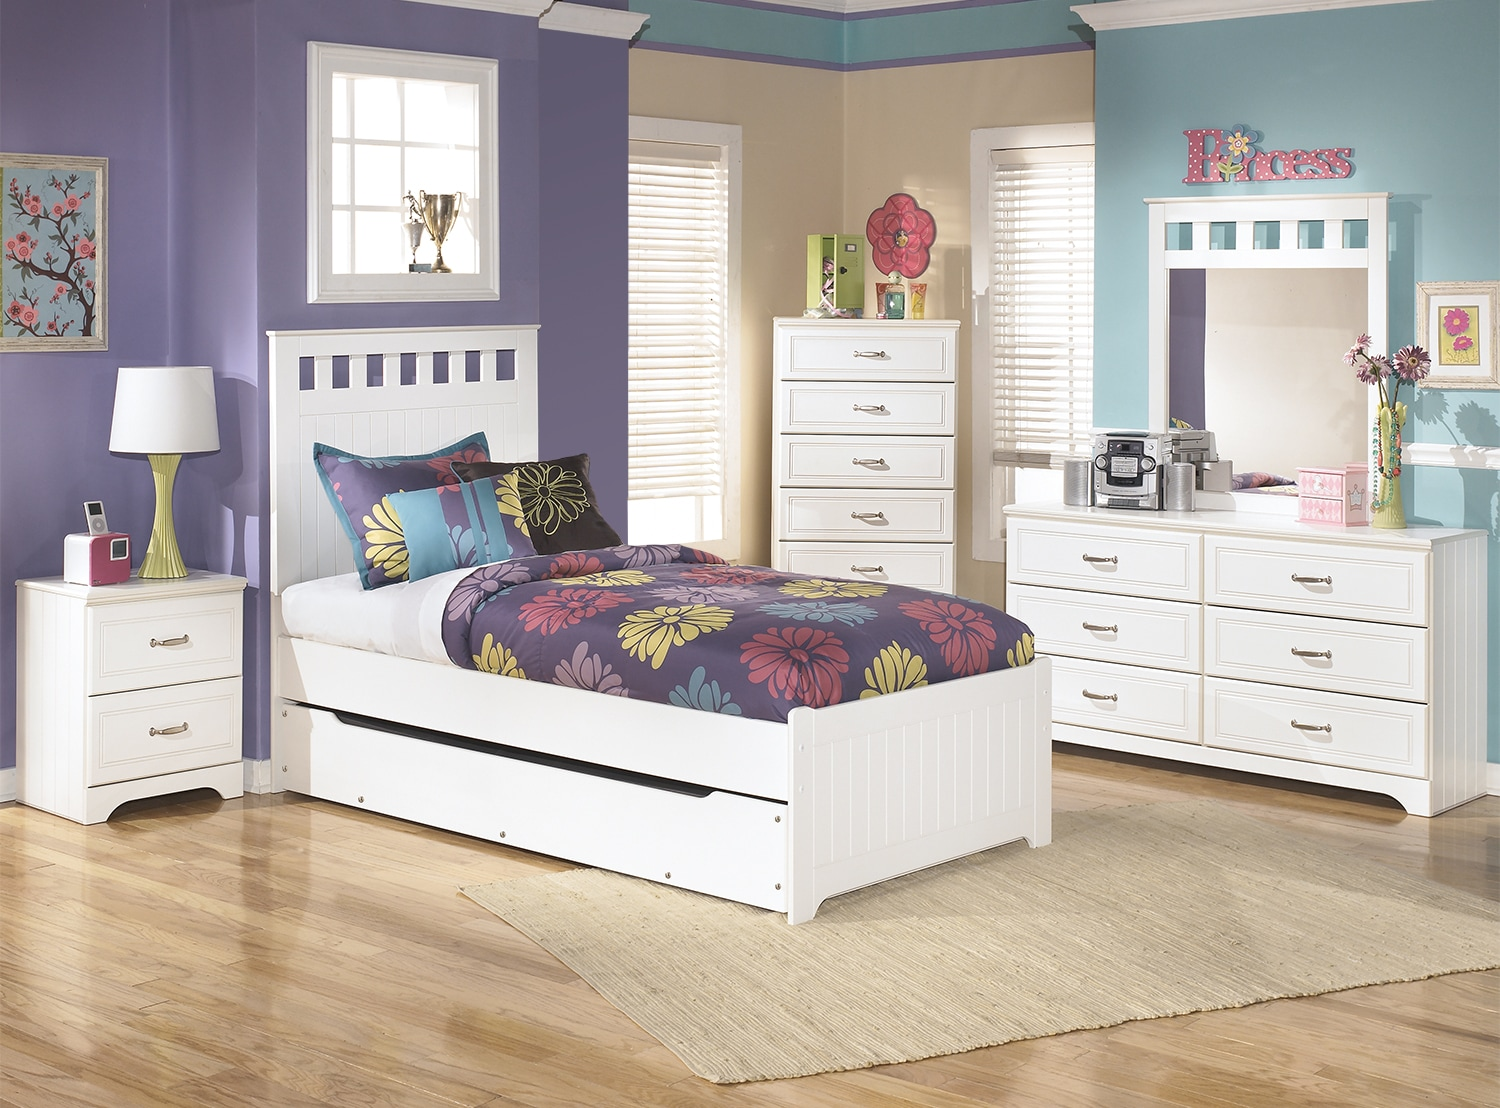 Lulu 7-Piece Twin Panel Bed Package with Trundle